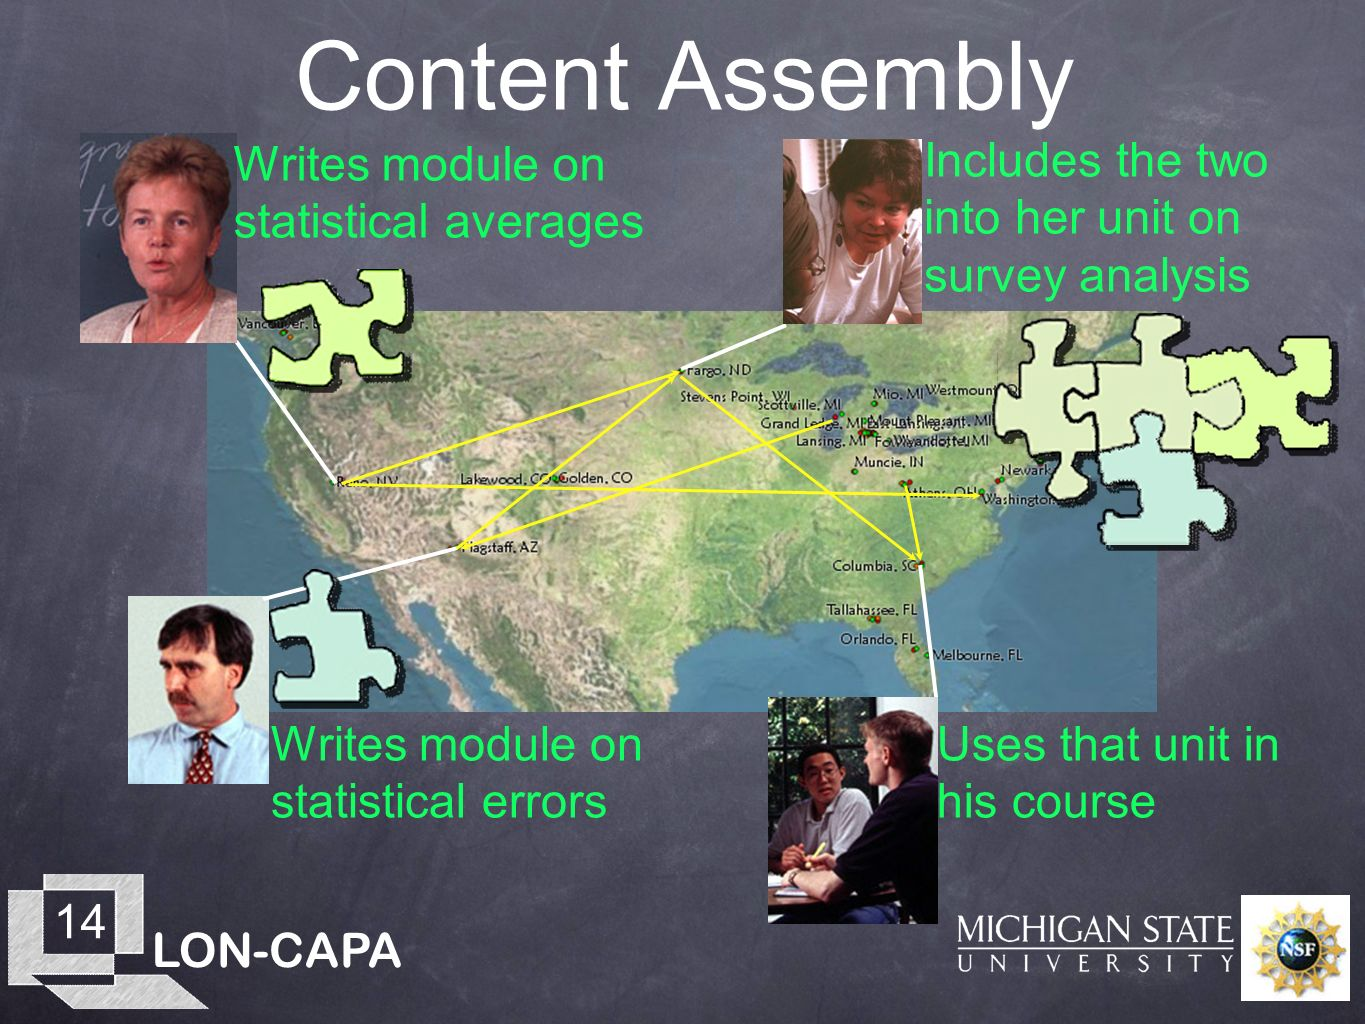 LON-CAPA 14 Content Assembly Writes module on statistical averages Writes module on statistical errors Includes the two into her unit on survey analys